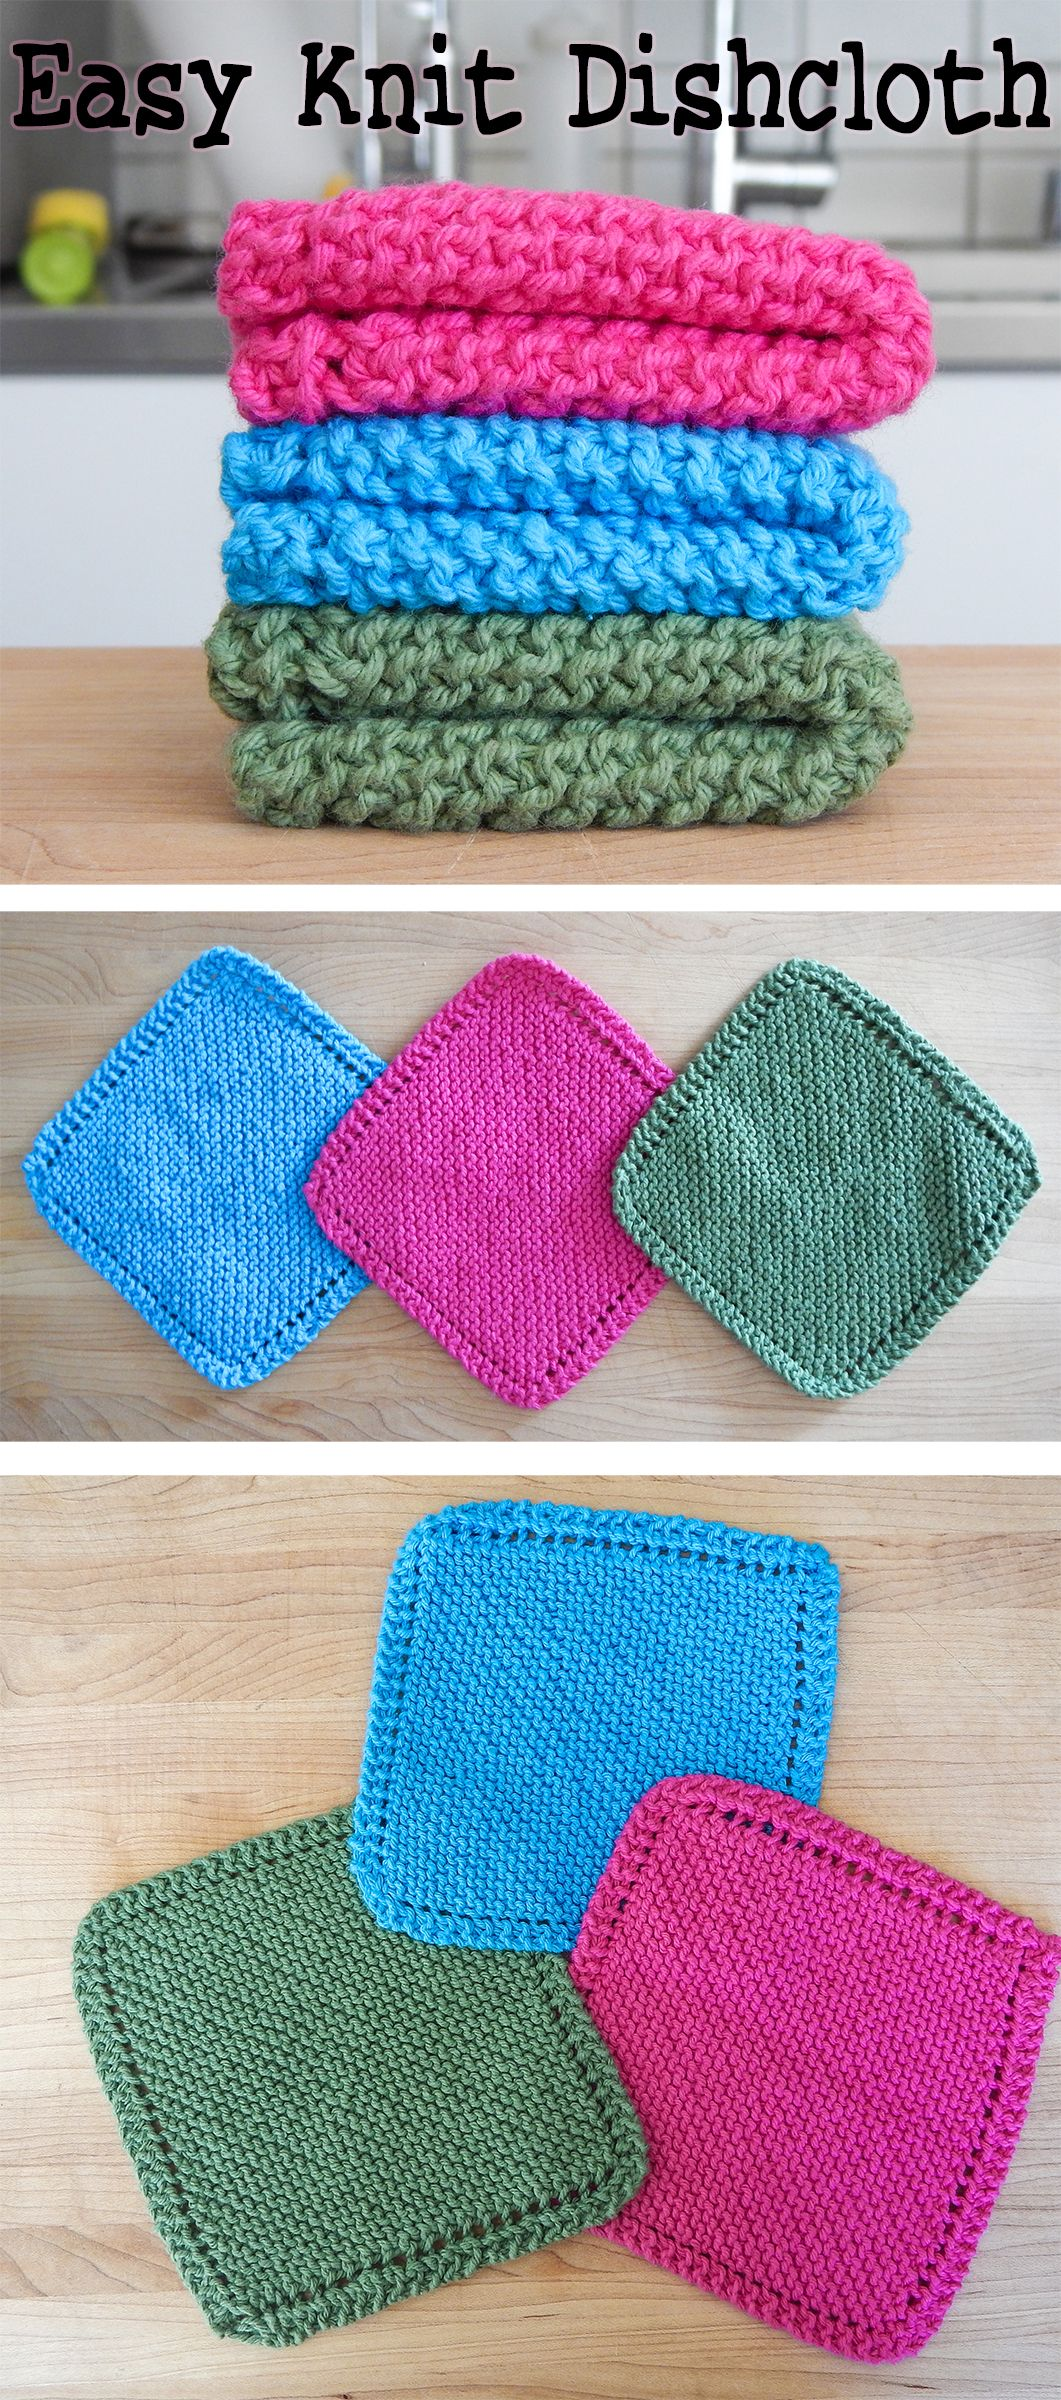 Easy Knit Dishcloth / Washcloth | Pinterest | Knitted dishcloths ...